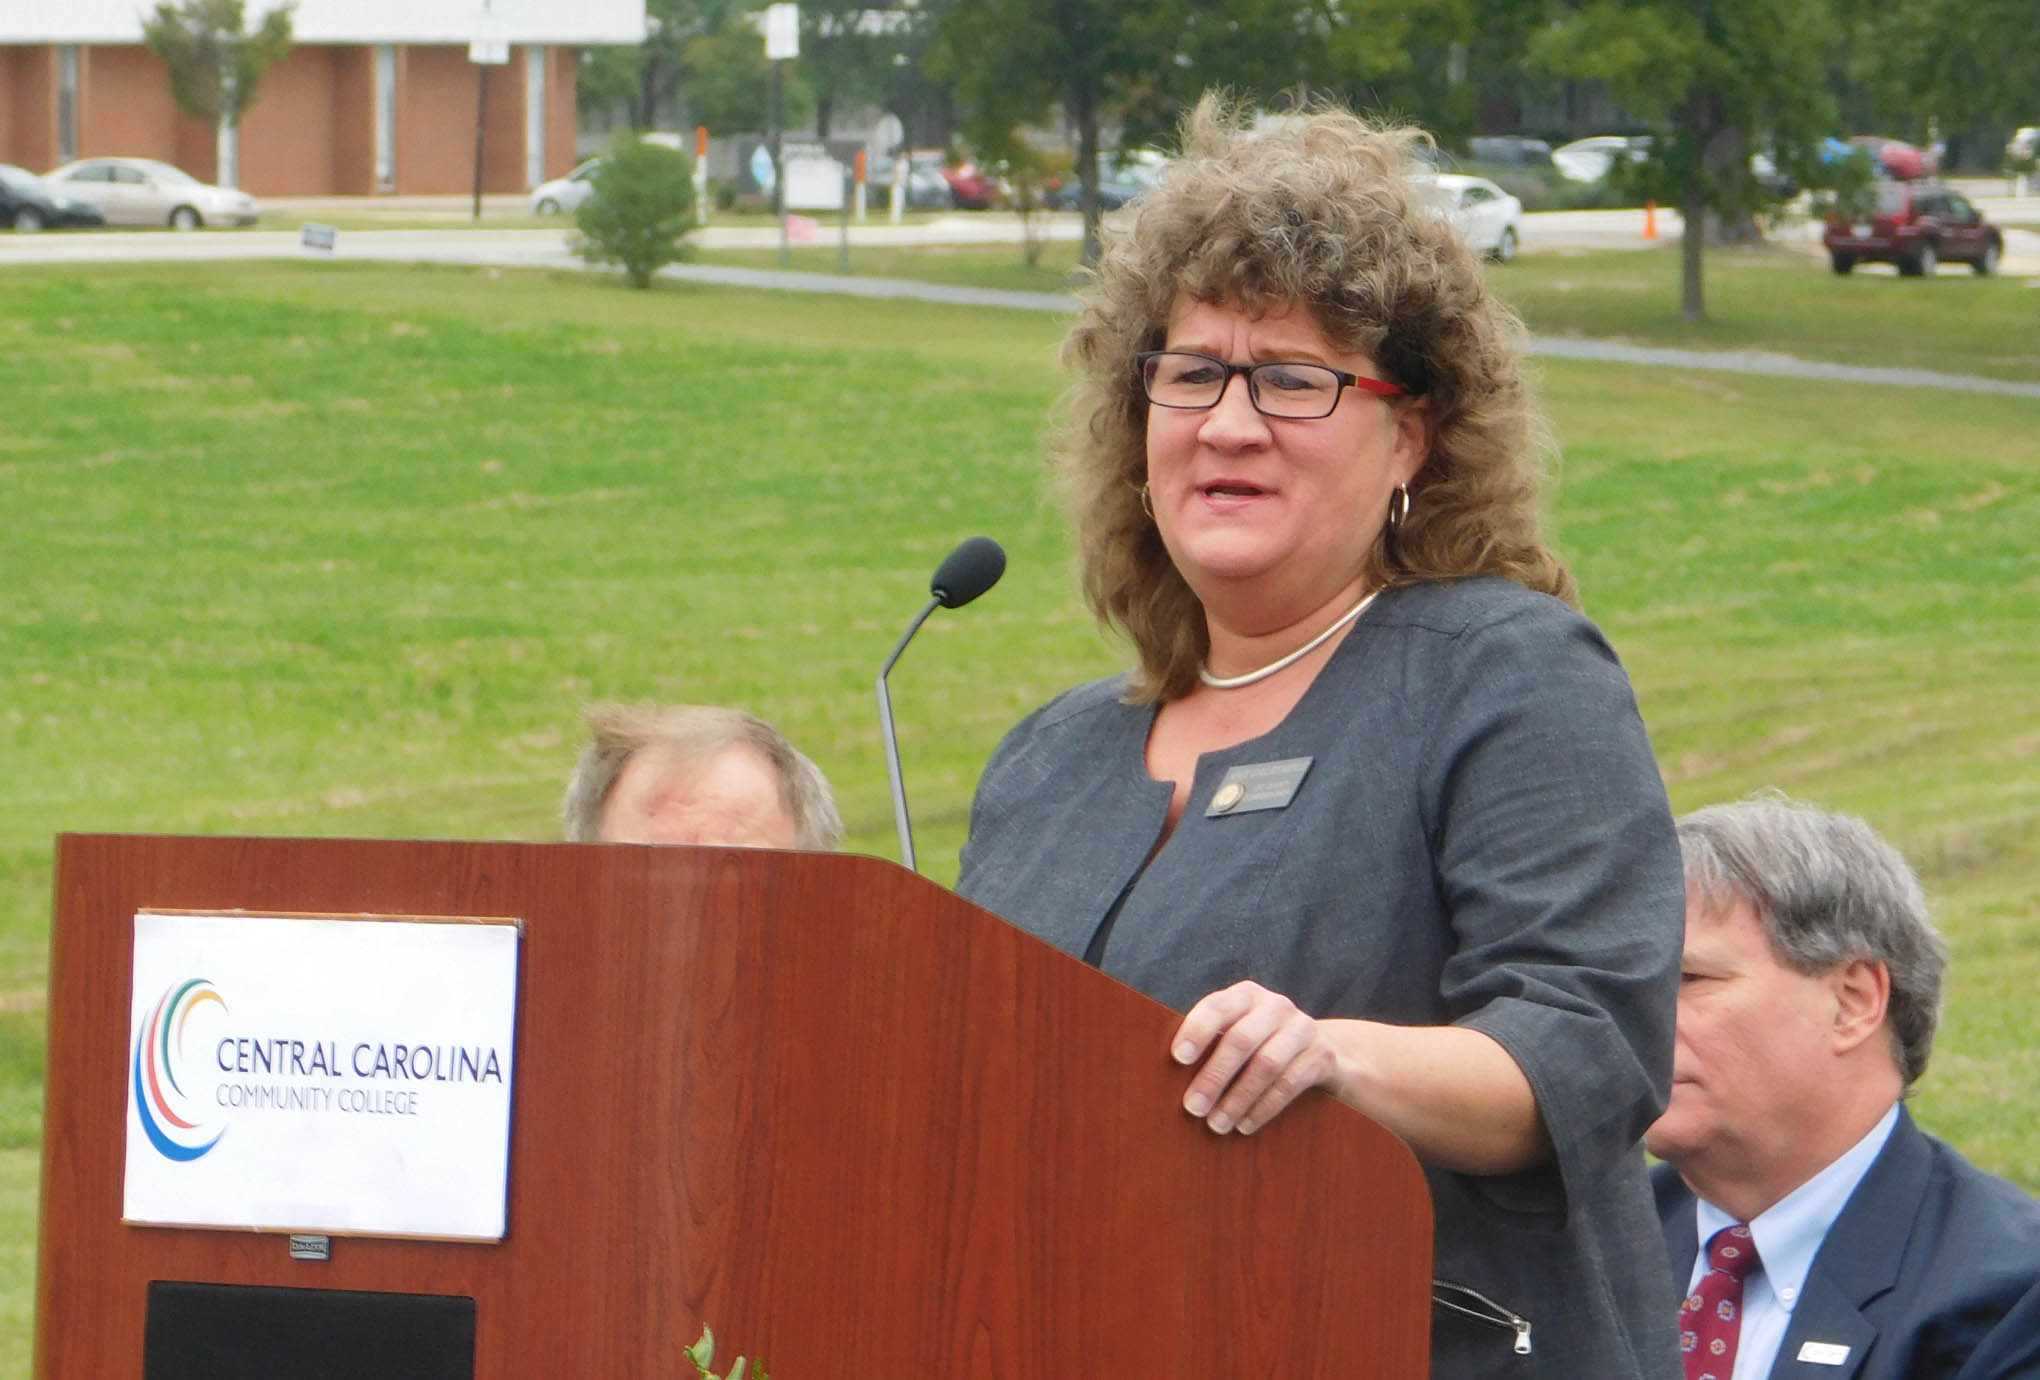 Click to enlarge,  Amy Dalrymple, Chair of the Lee County Board of Commissioners, told attendees at the college's groundbreaking ceremony on Oct. 6, 'On behalf of the Lee County Board of Commissioners, we are all excited to get this thing going.'